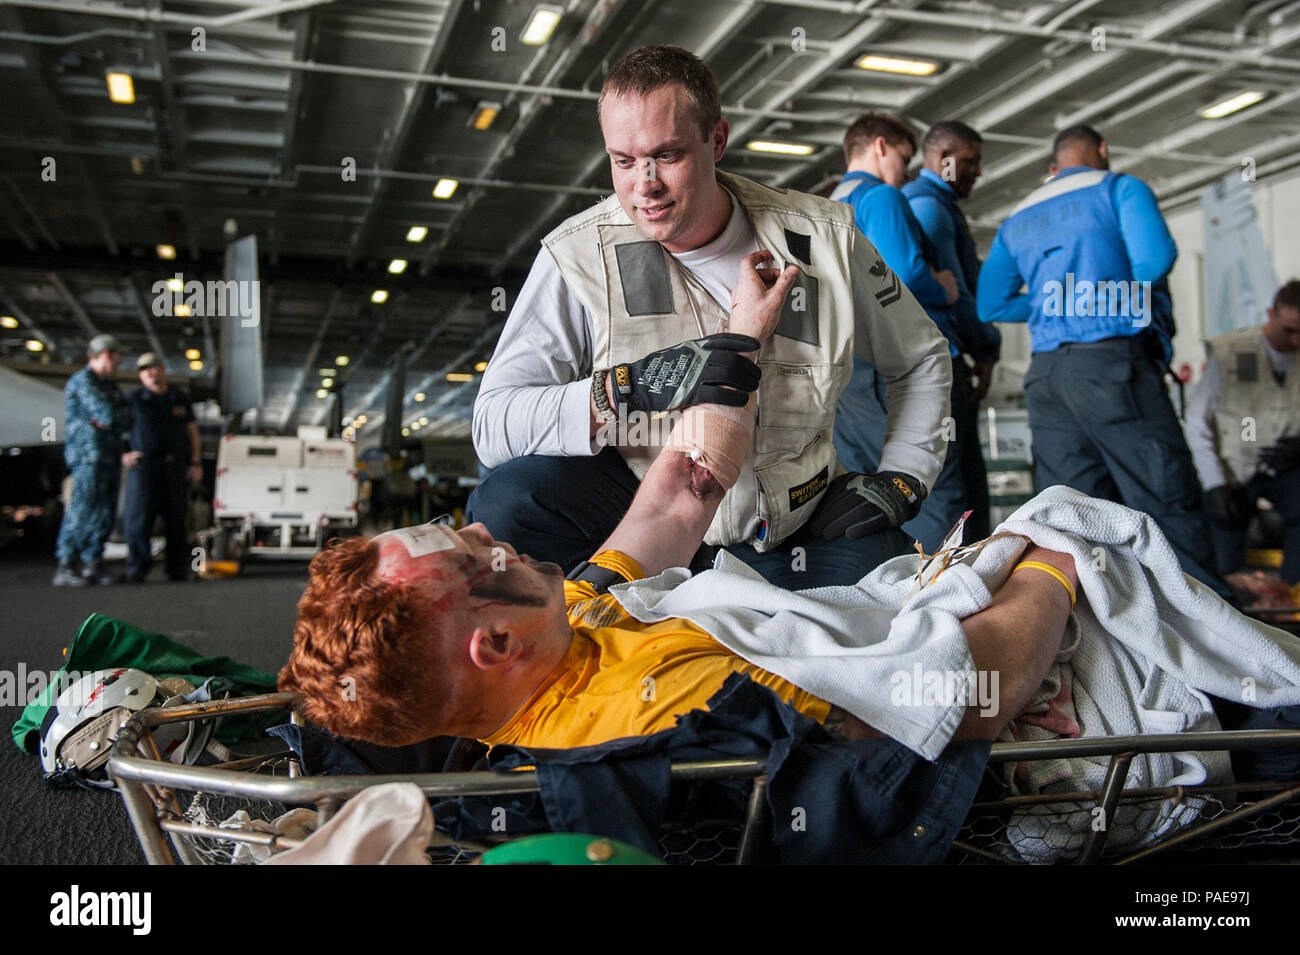 160318-N-GK939-104   ARABIAN GULF (March 18, 2016) Hospital Corpsman 2nd Class Lucas Roberts simulates maintaining a distressed casualty during a mass casualty drill in the hangar bay of aircraft carrier USS Harry S. Truman (CVN 75). Harry S. Truman Carrier Strike Group is deployed in support of Operation Inherent Resolve, maritime security operations, and theater security cooperation efforts in the U.S. 5th Fleet area of operations. (U.S. Navy photo by Mass Communication Specialist Seaman Lindsay A. Preston/Released) - Stock Image